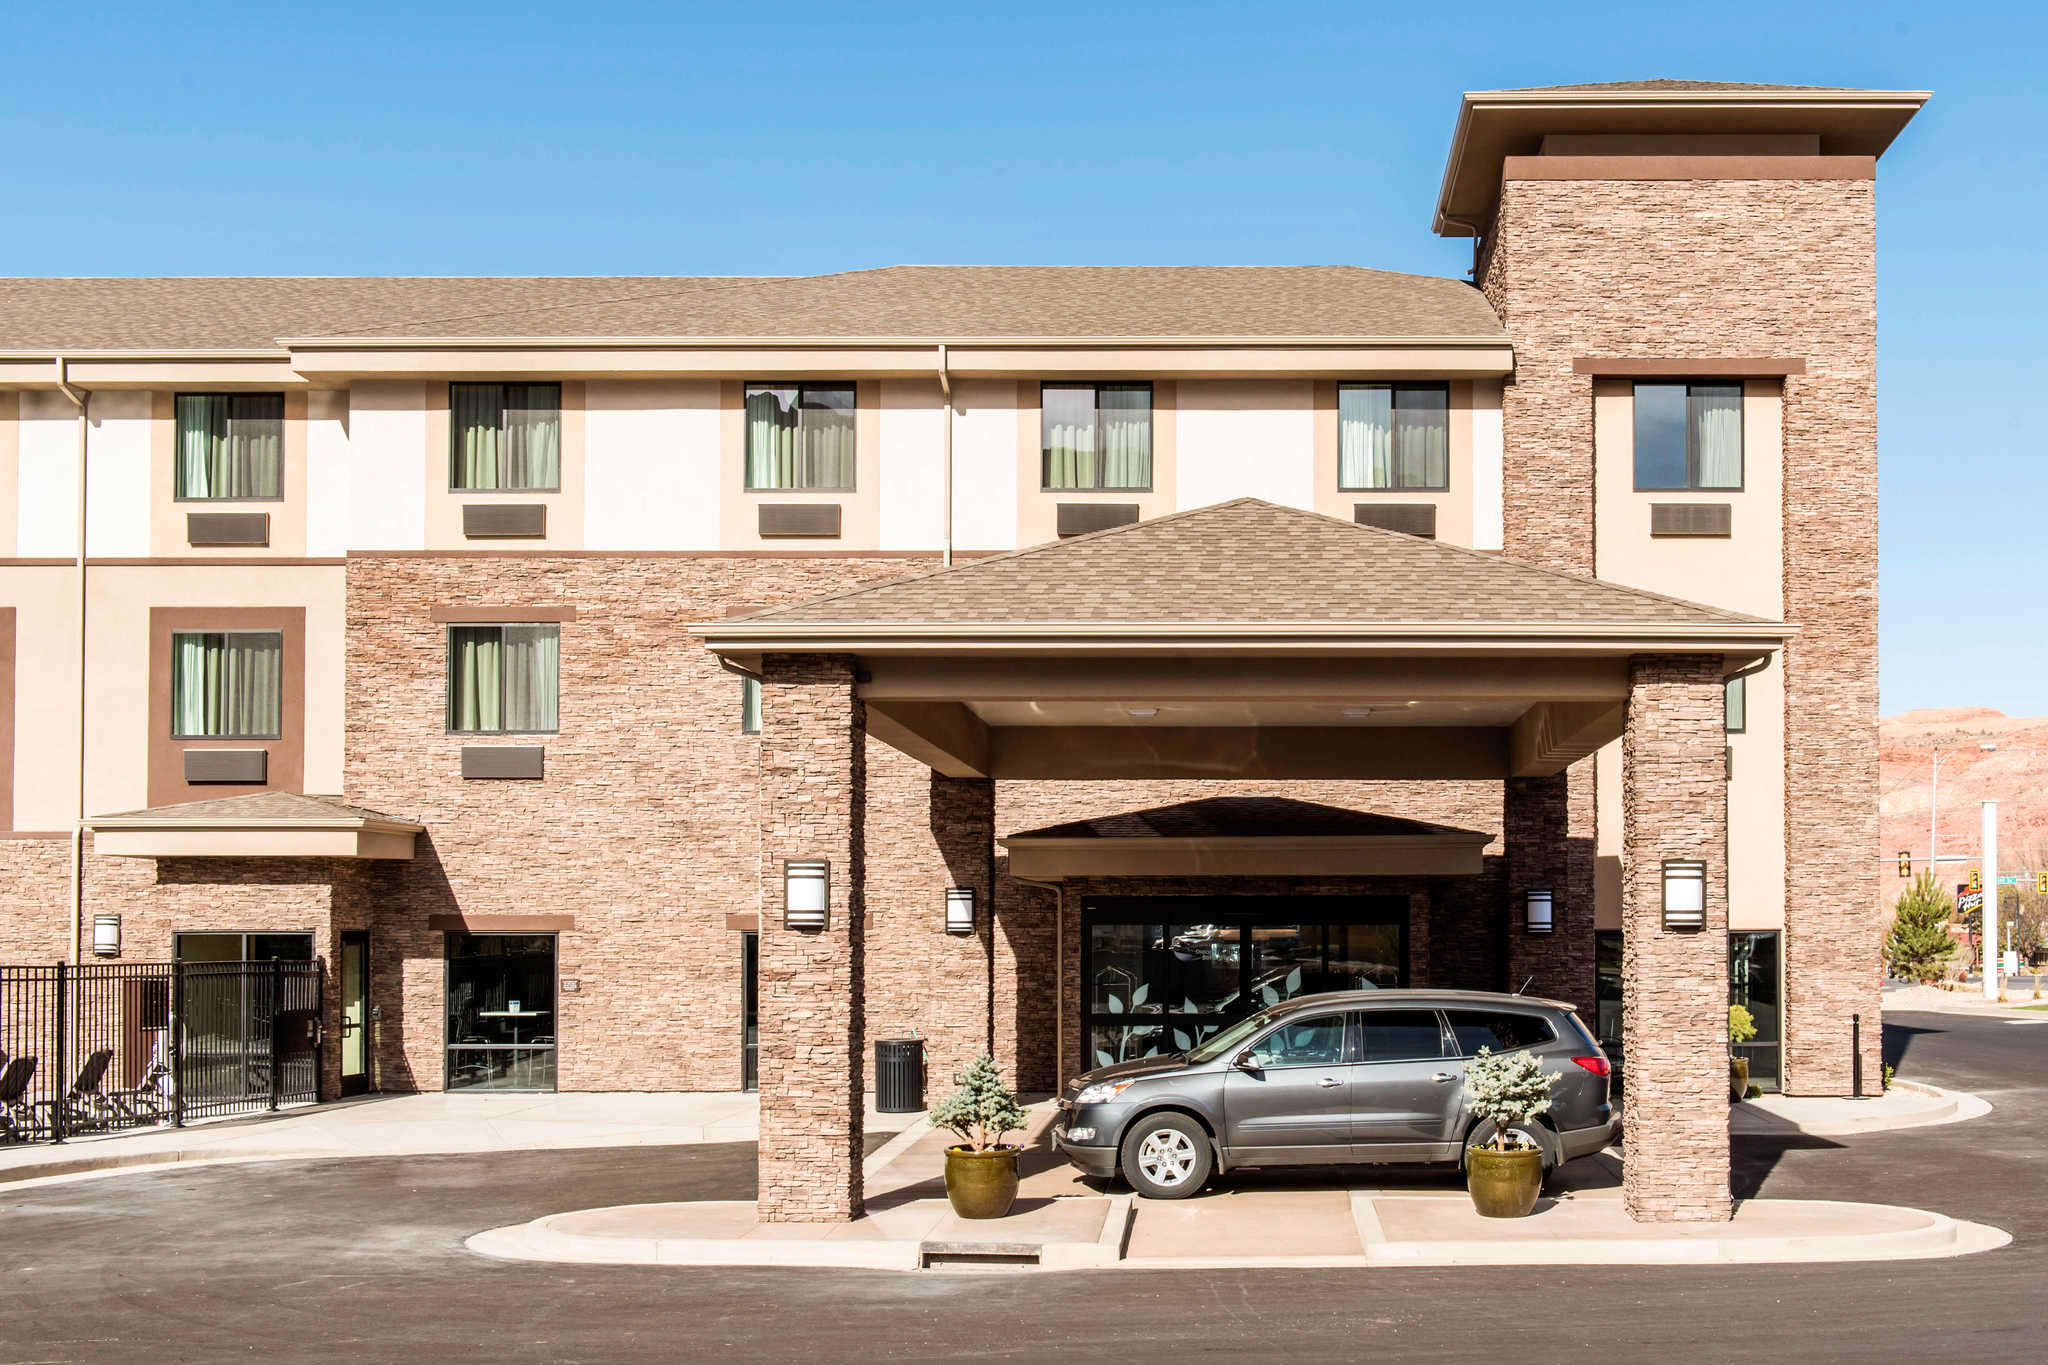 MainStay Suites Moab near Arches National Park image 0